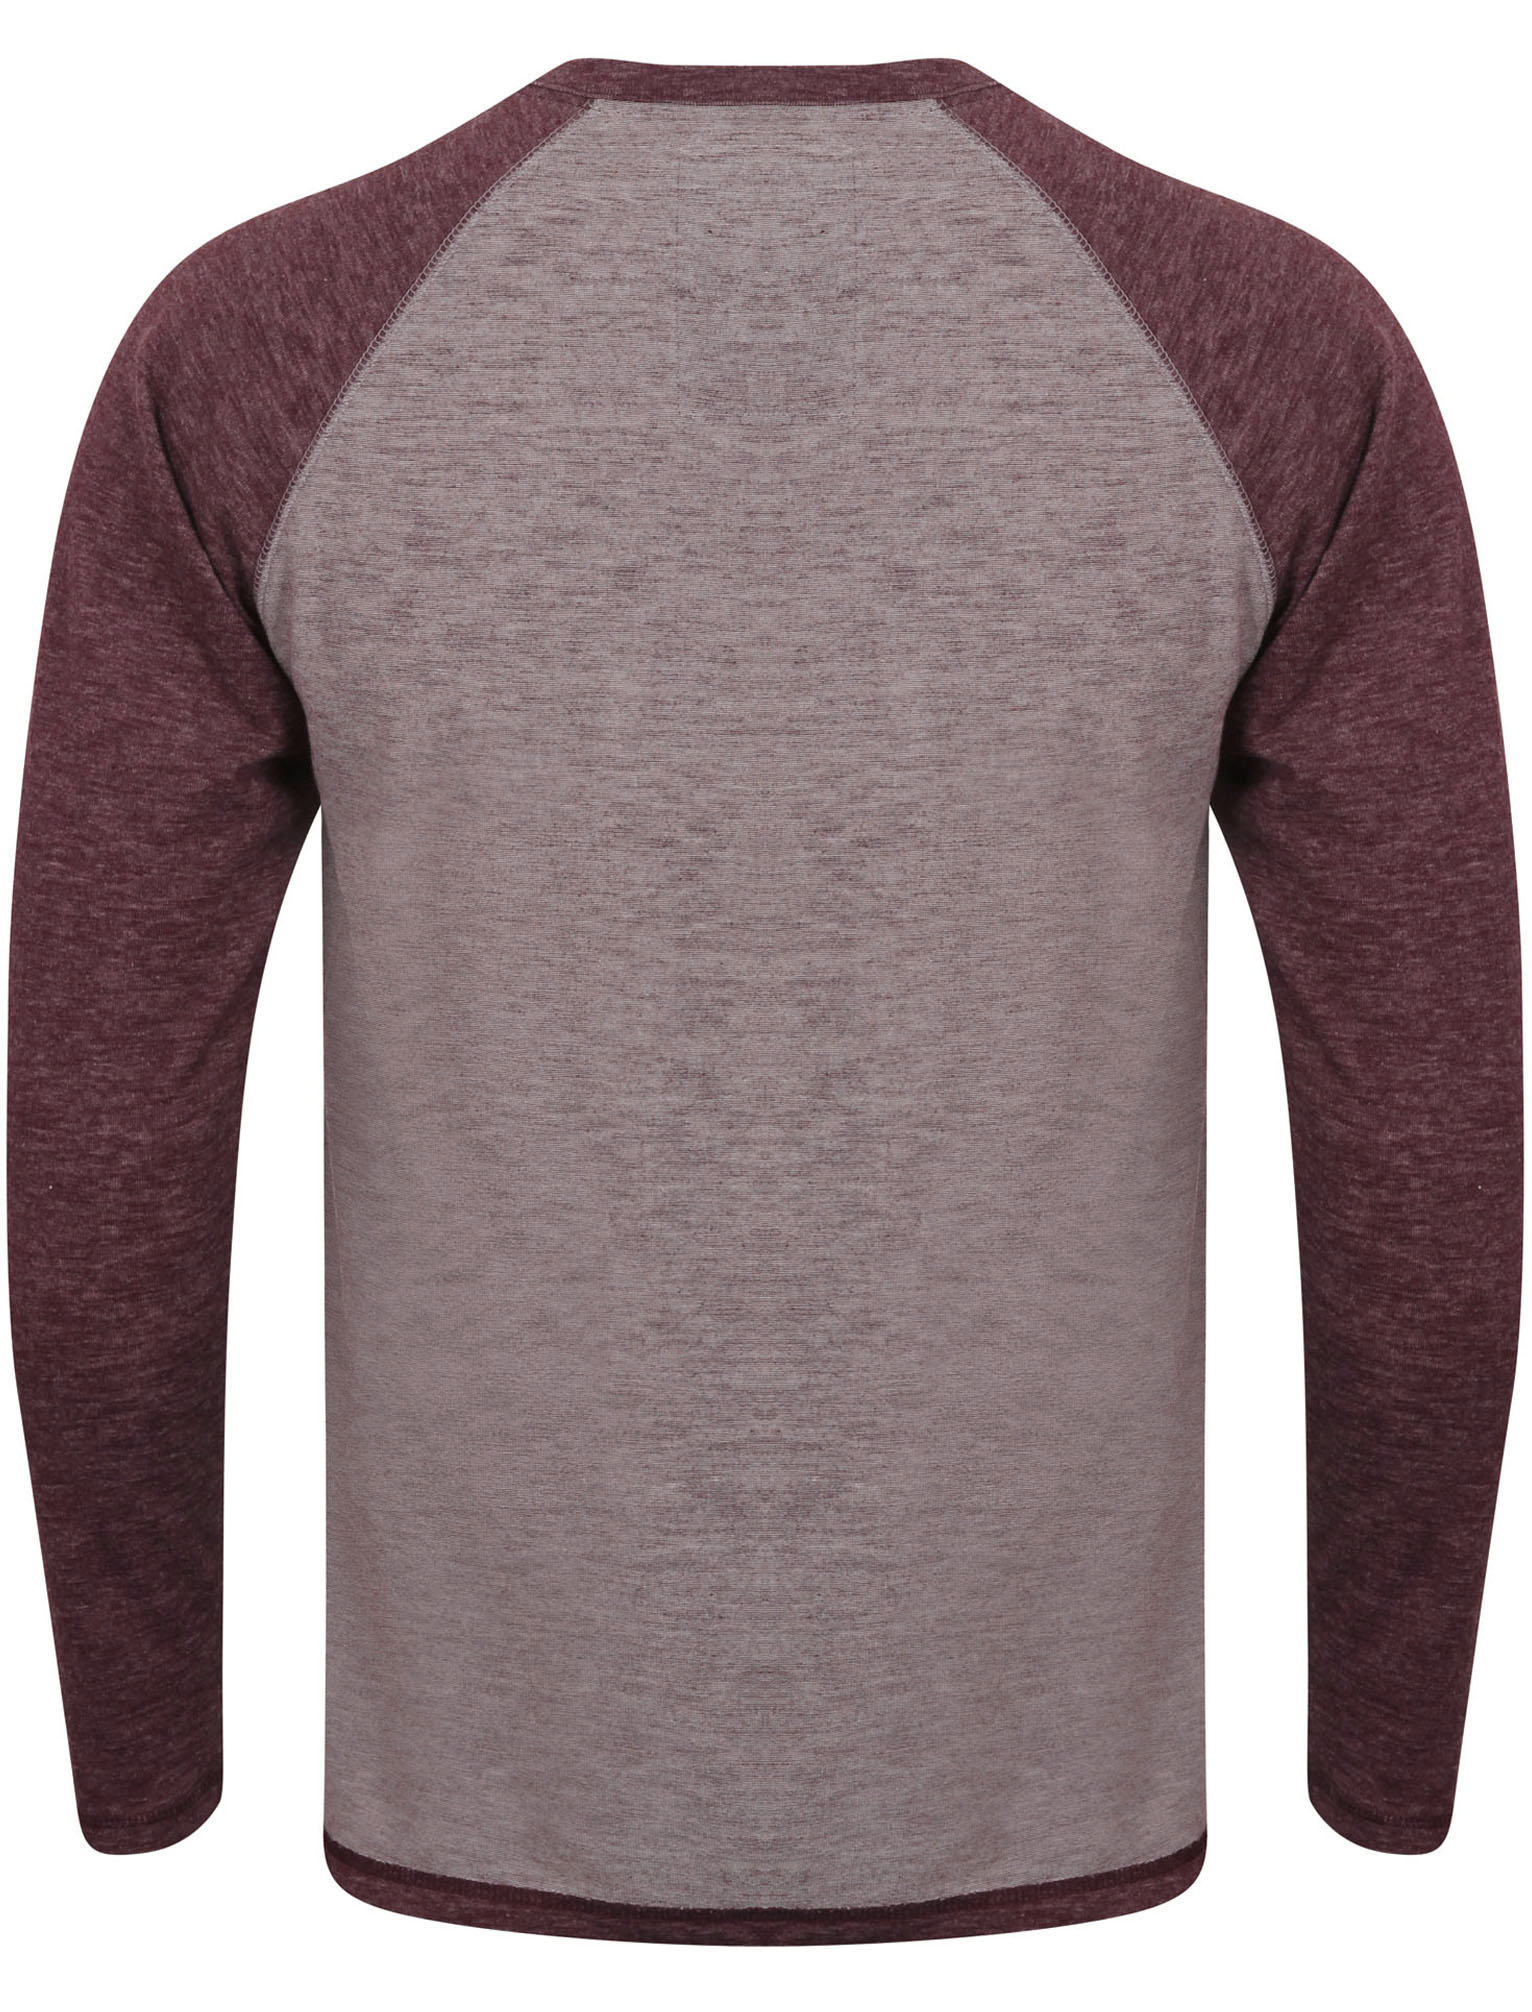 New-Mens-Tokyo-Laundry-Branded-Soft-Jersey-Long-Sleeve-Tops-T-Shirts-Size-S-XL thumbnail 25